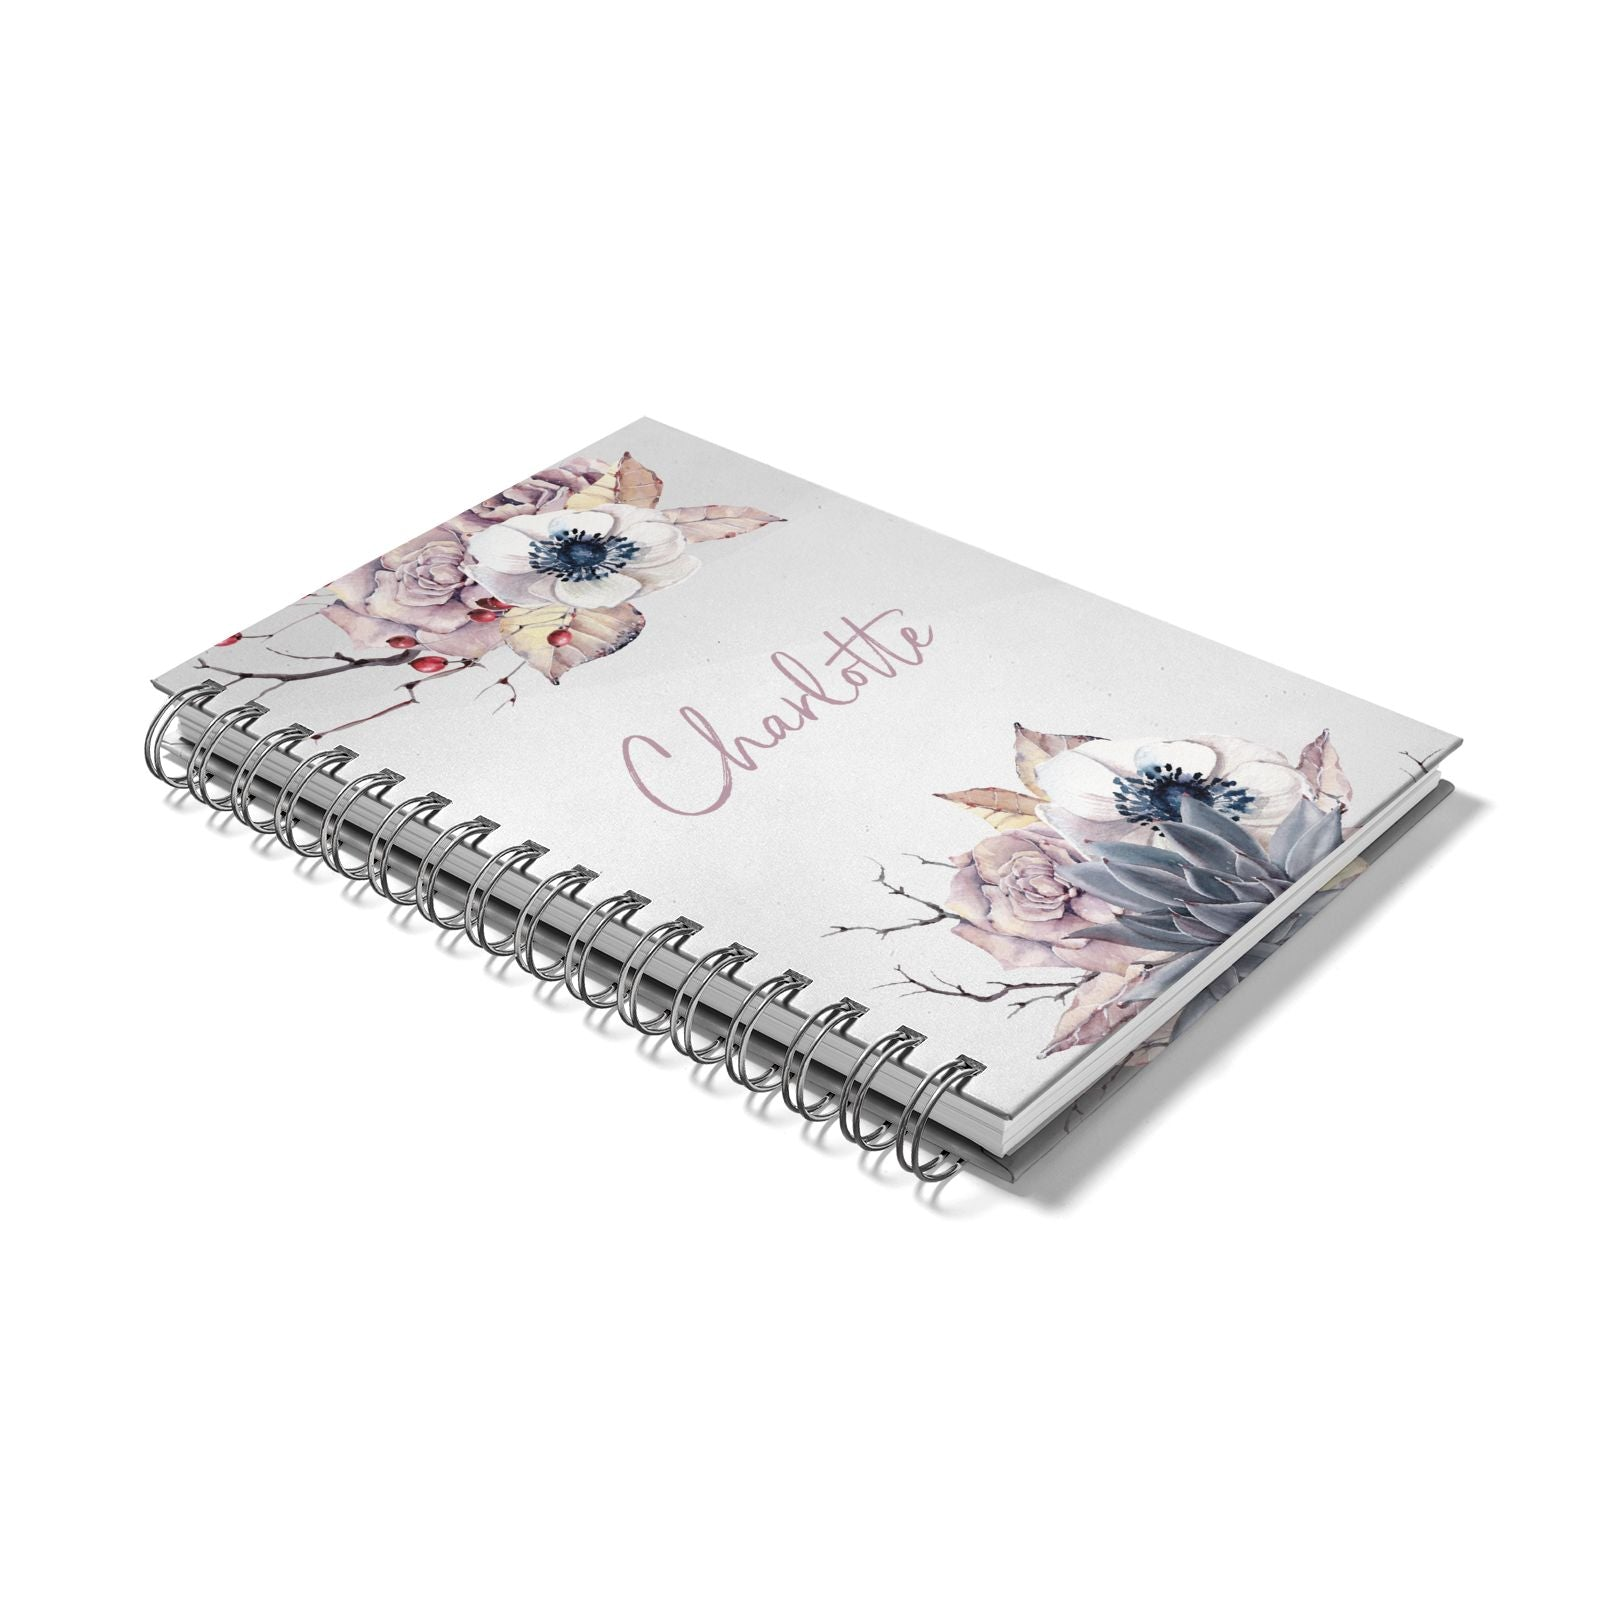 Personalised Autumn Floral Notebook with Silver Coil Laid Flat